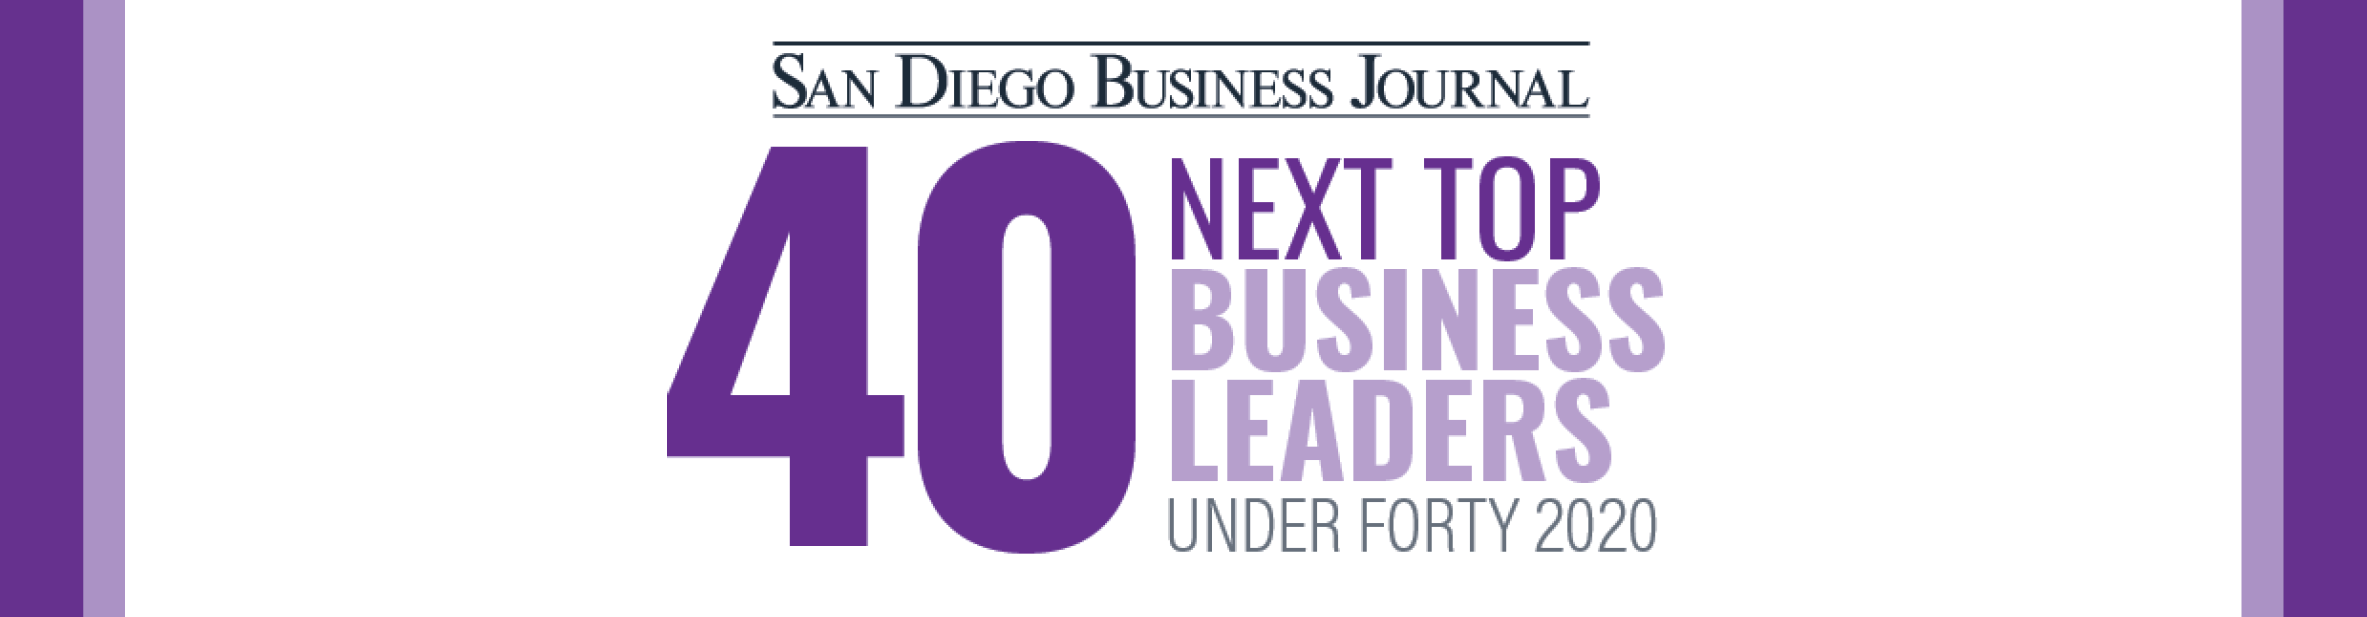 San Diego Business Journal Next Top 40 Under 40